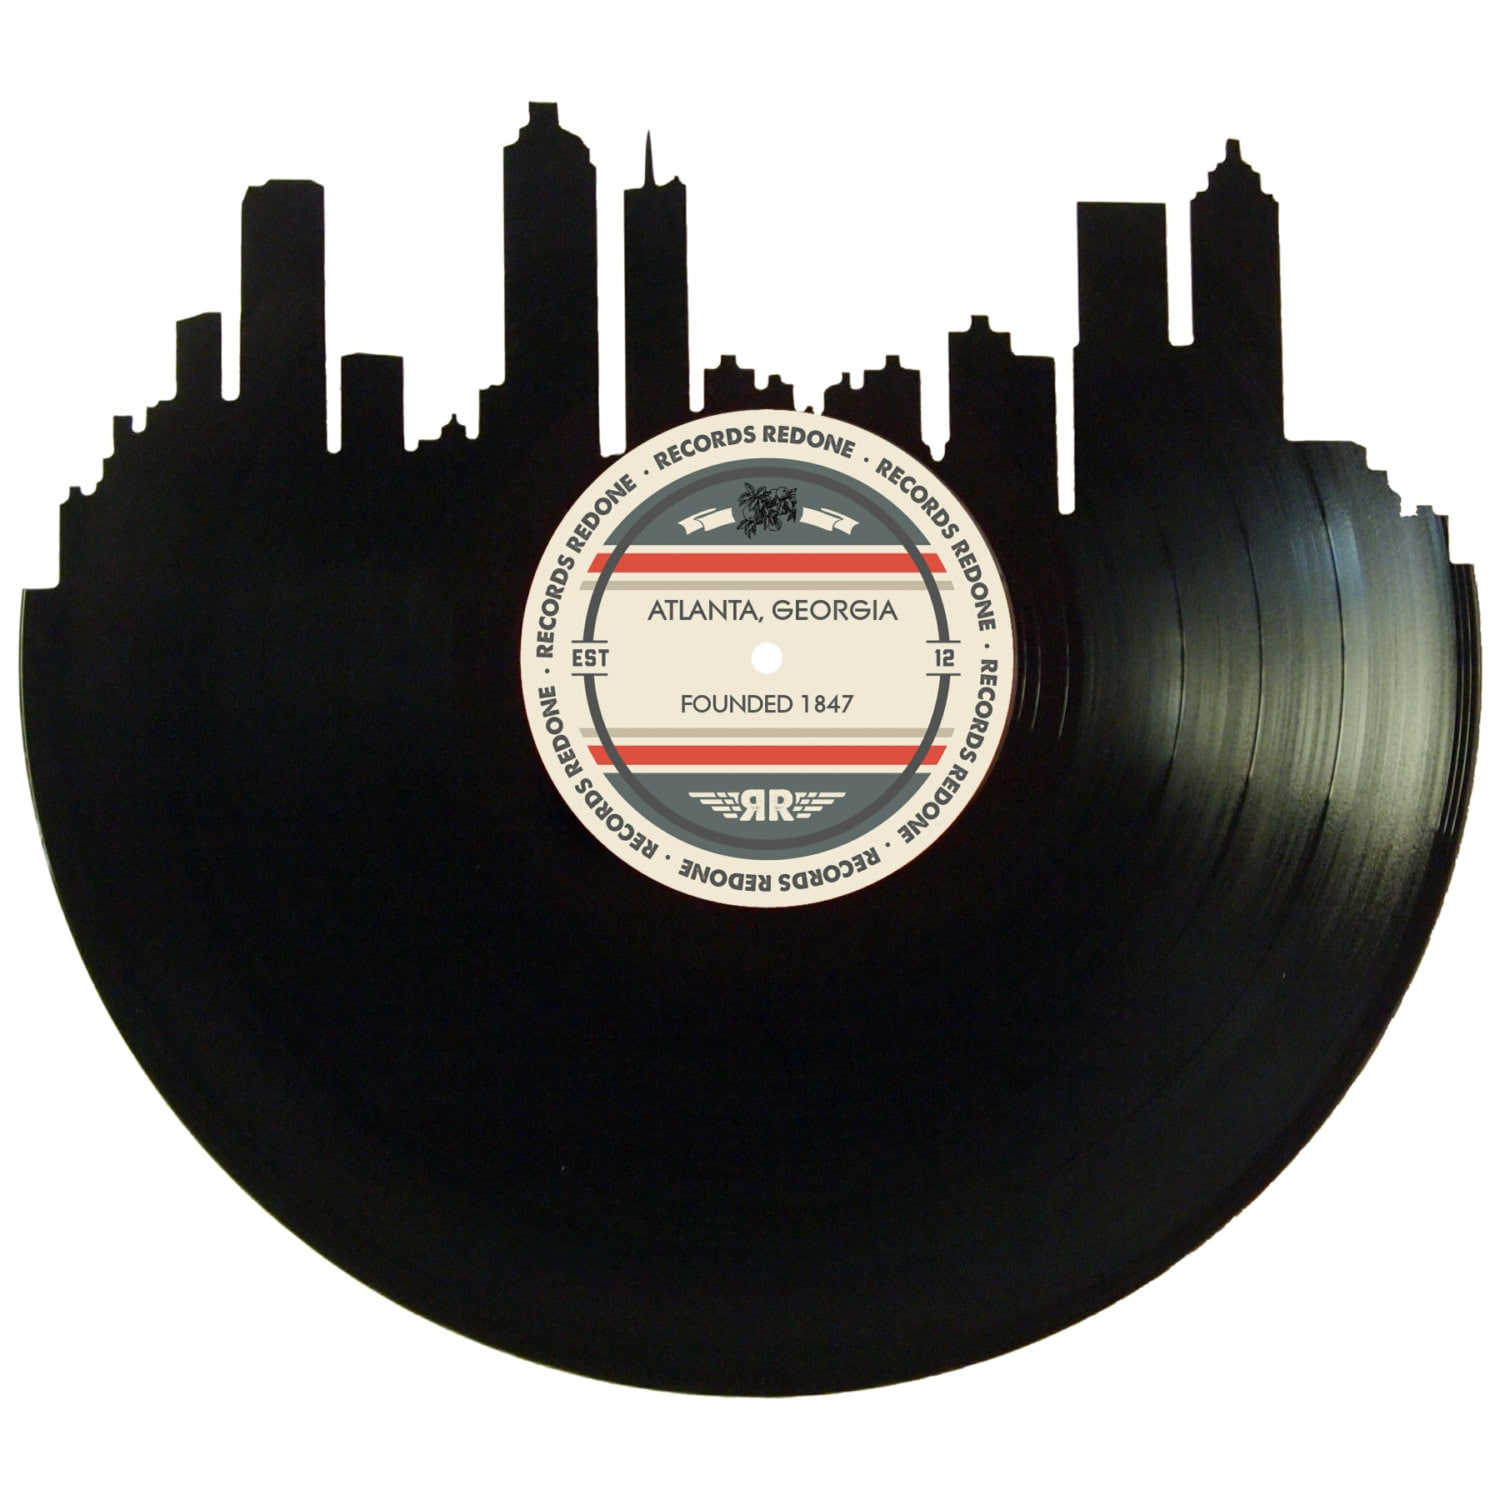 Atlanta skyline records redone label vinyl record wall art for Vinyl records decorations for wall